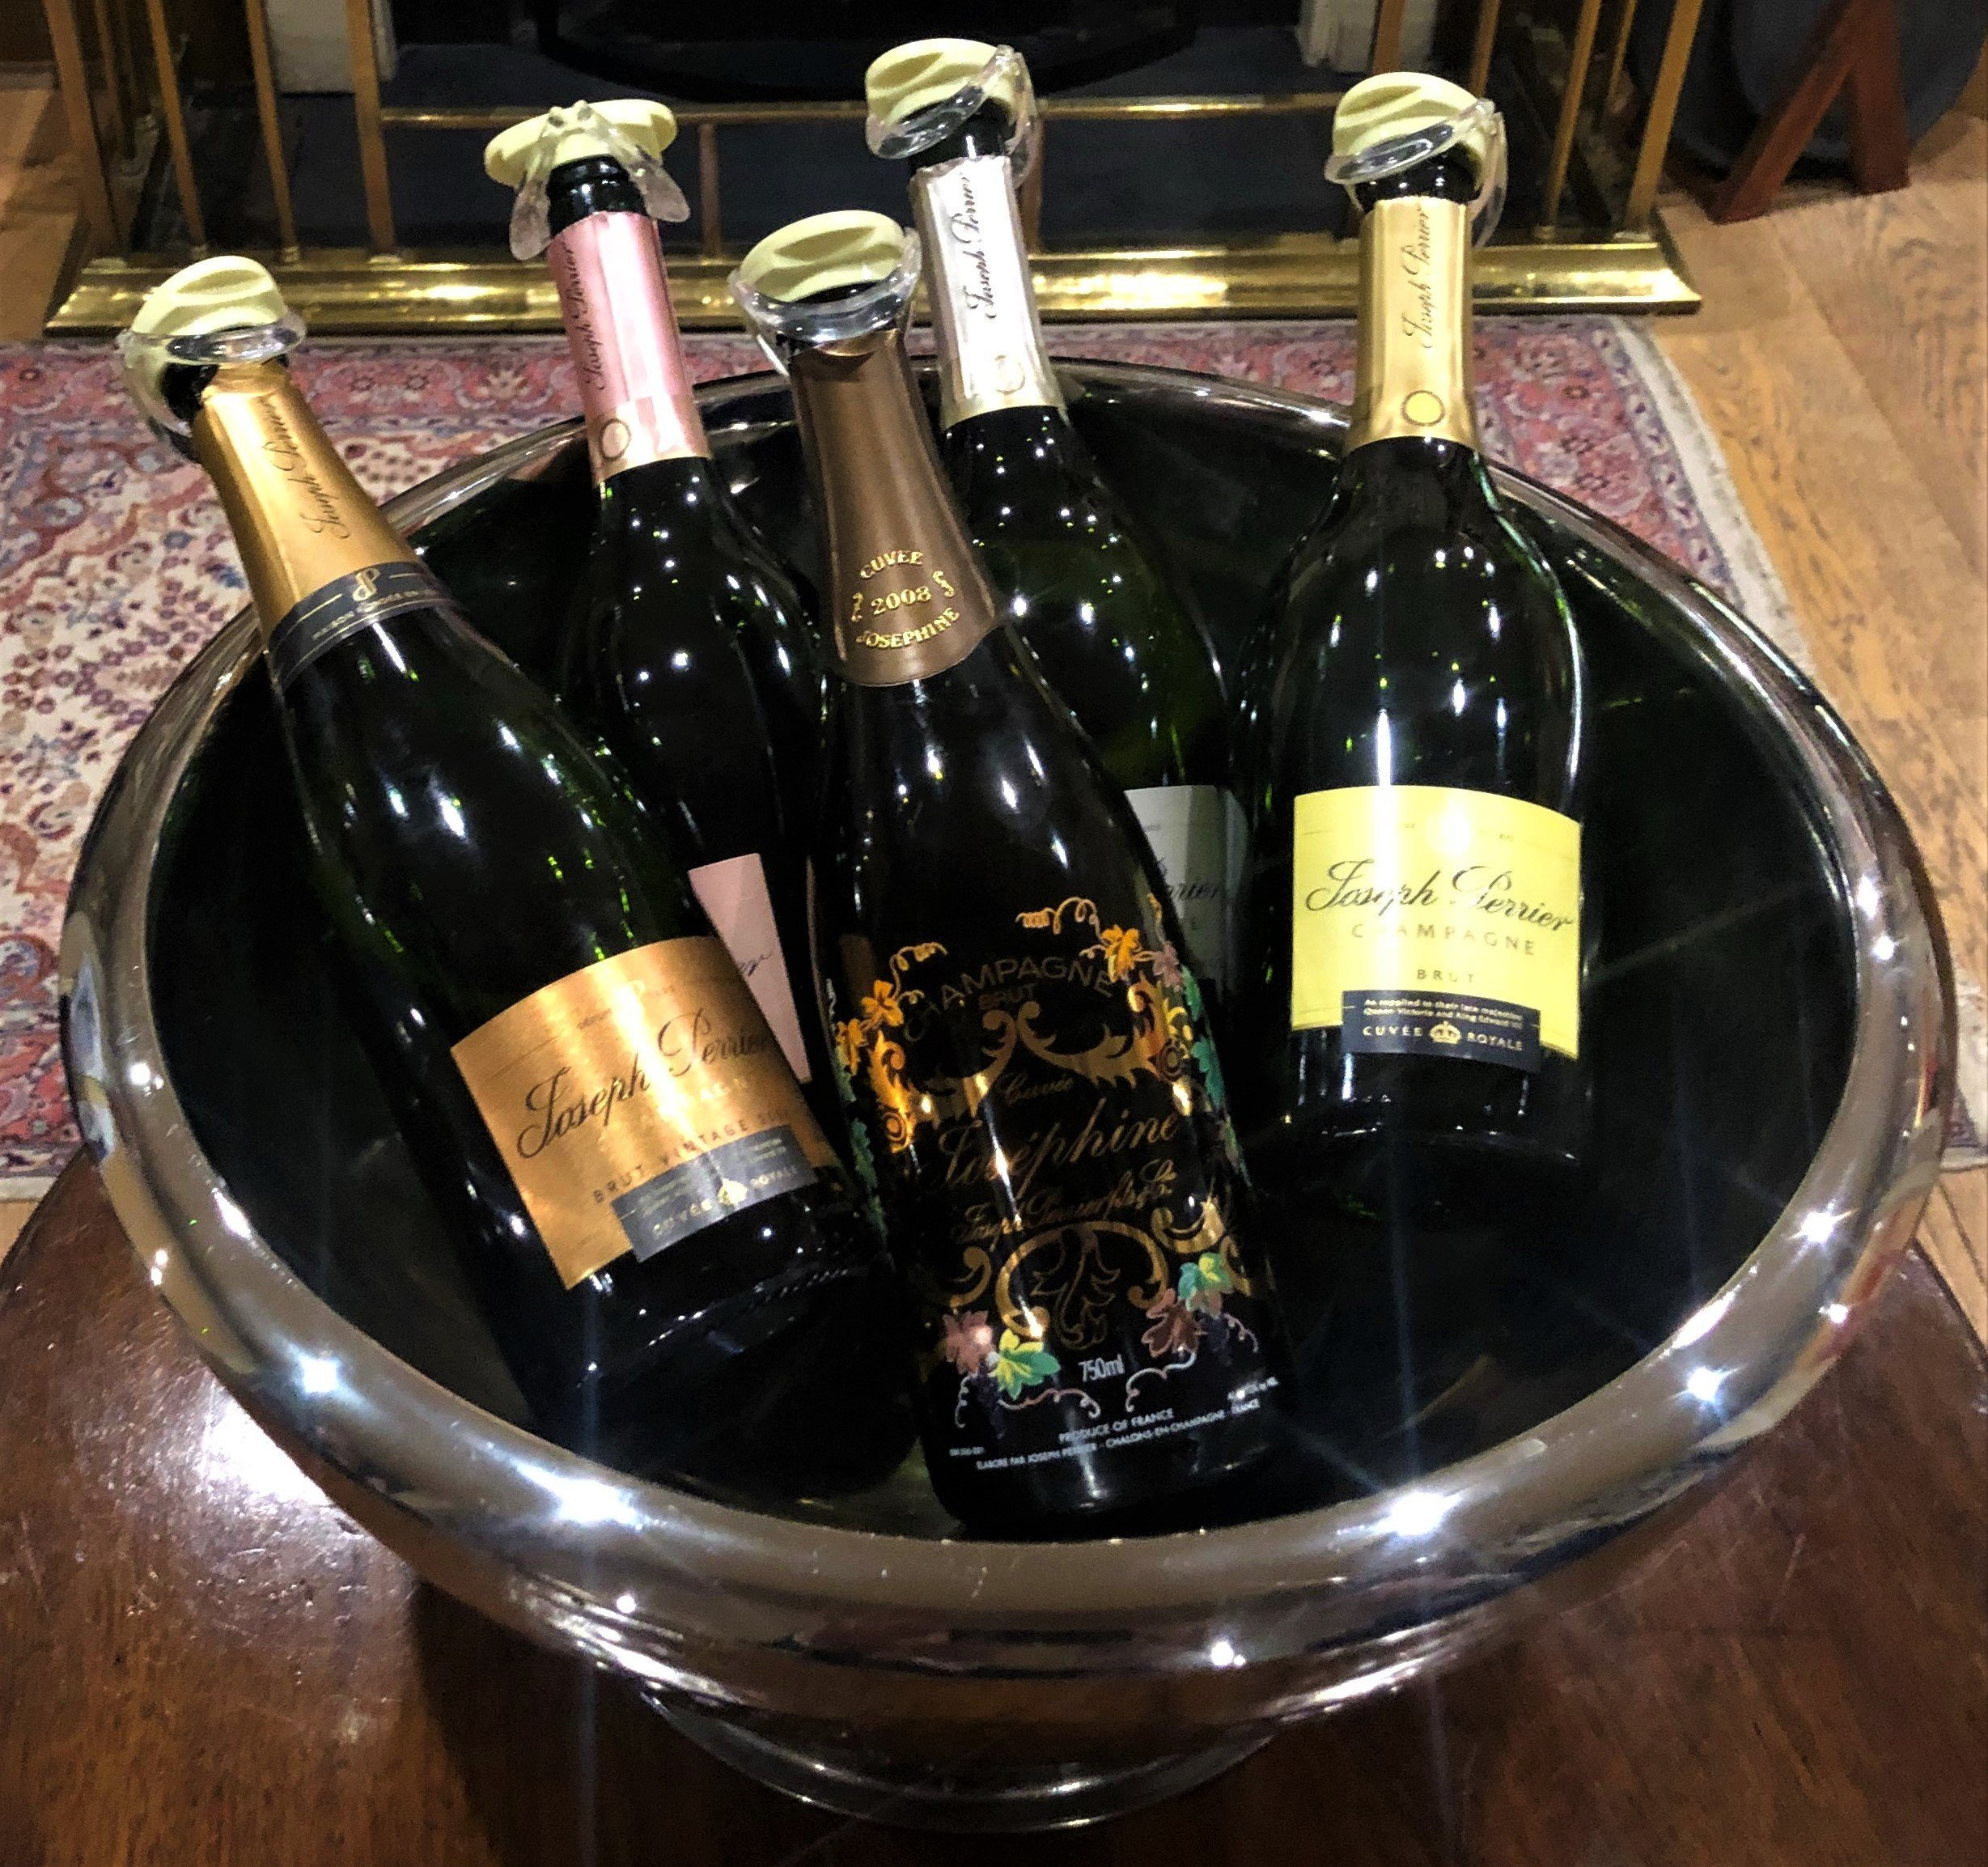 Spa Chalons En Champagne joseph perrier champagne - park house hotel & spa